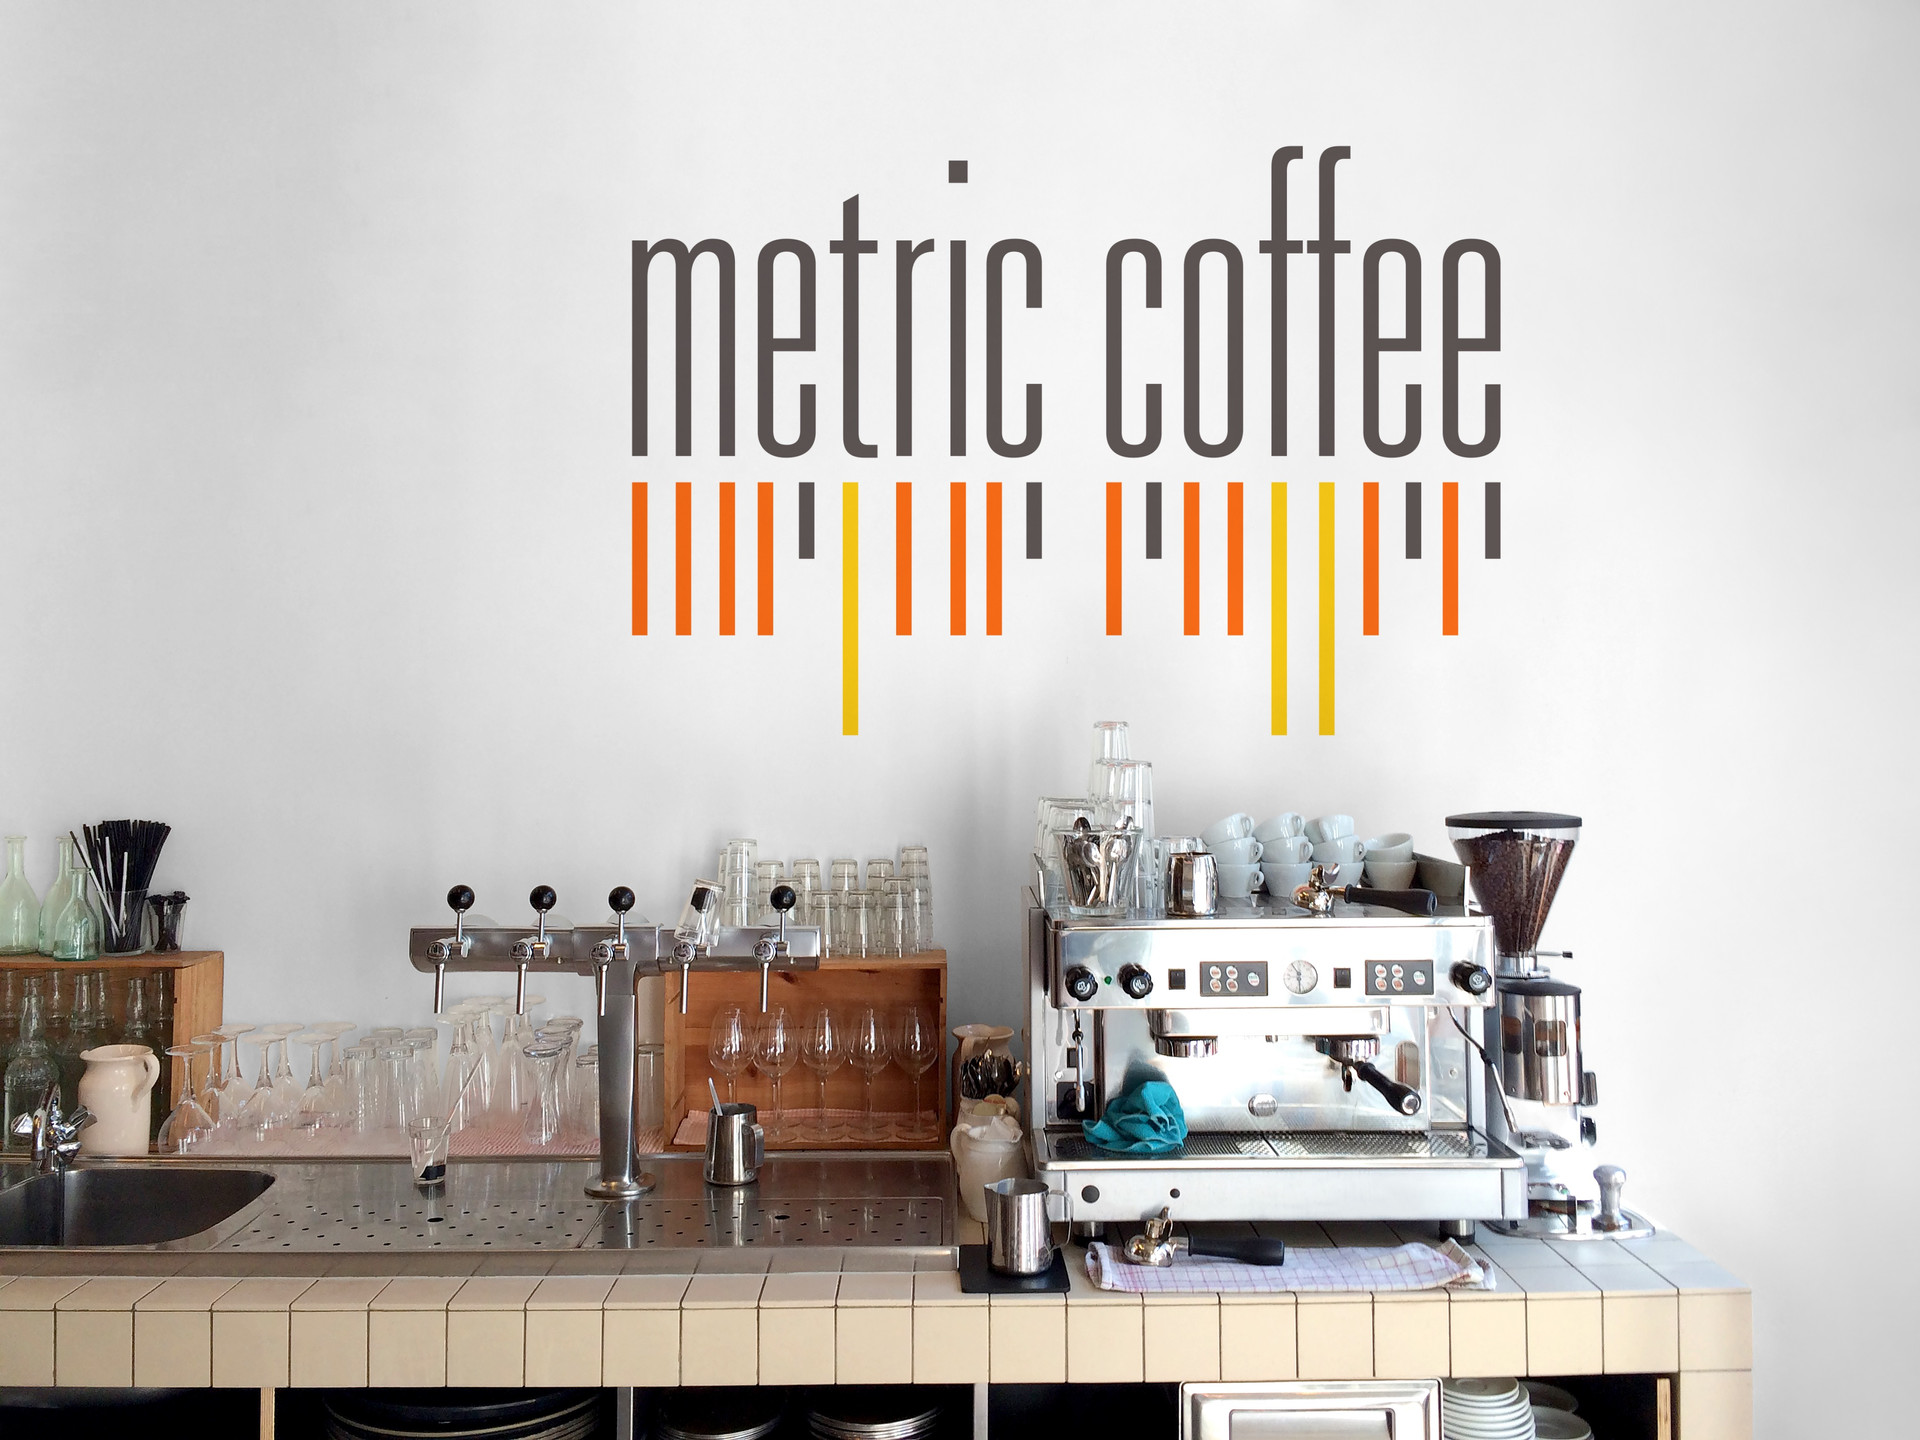 metric coffee wall.jpeg